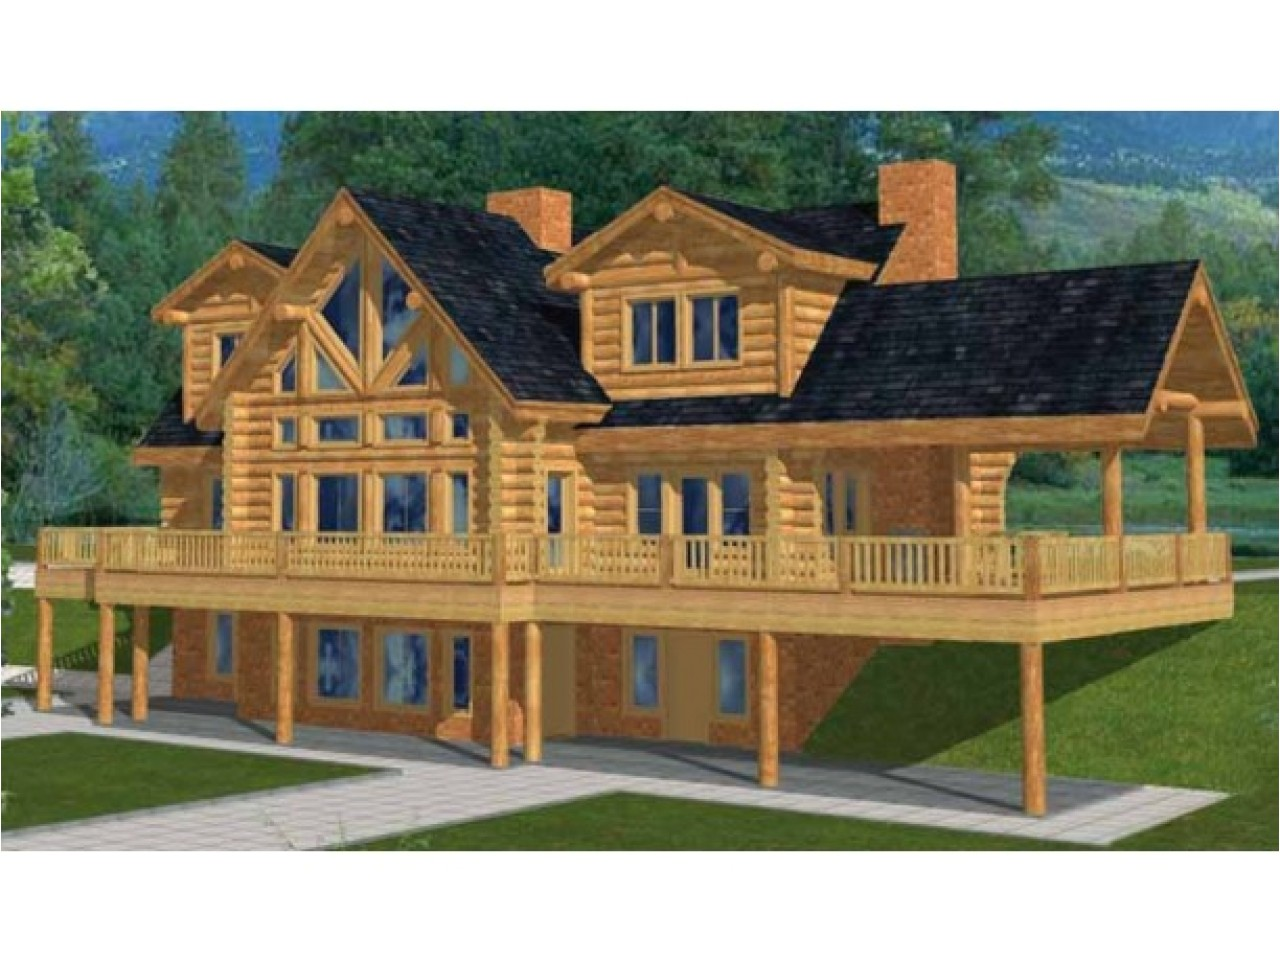 22bc375d6a9c69ad two story log cabin house plans inexpensive modular homes log cabin